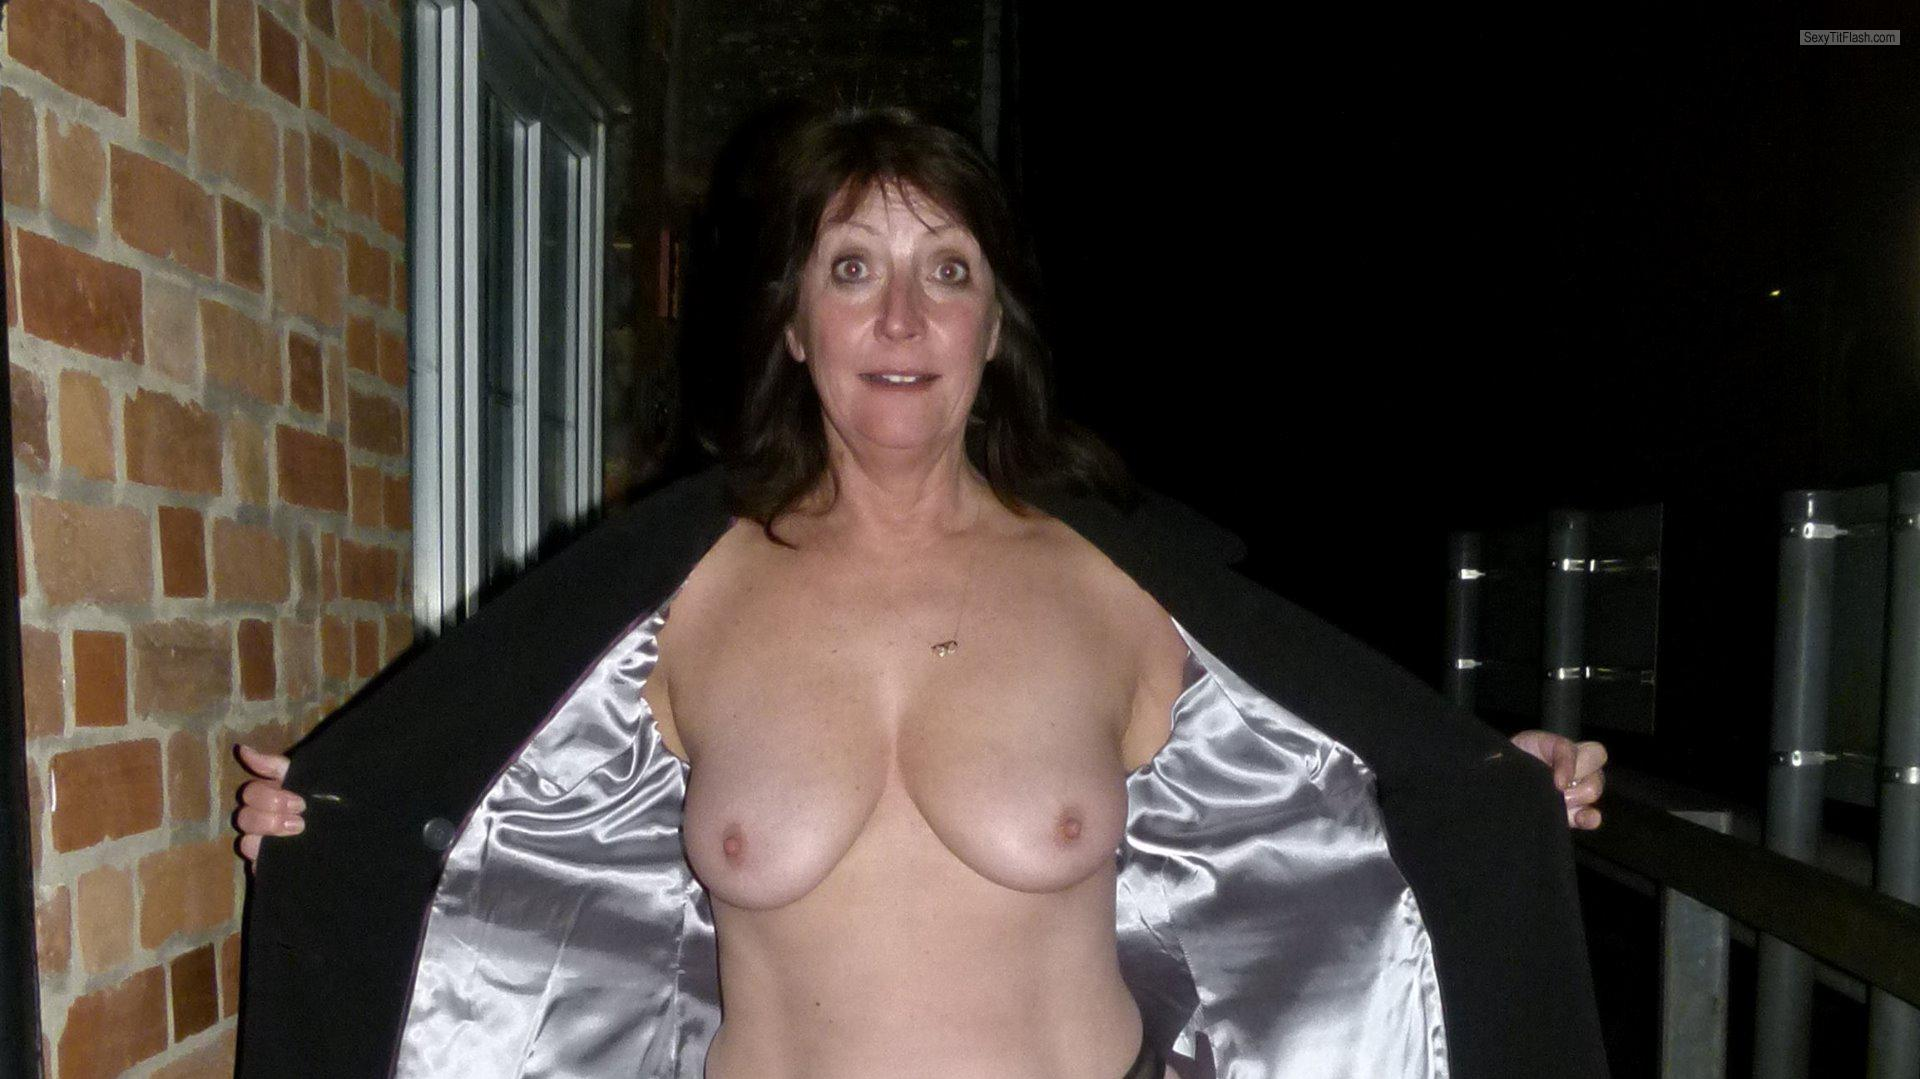 Tit Flash: My Big Tits - Topless Elaine J from United Kingdom